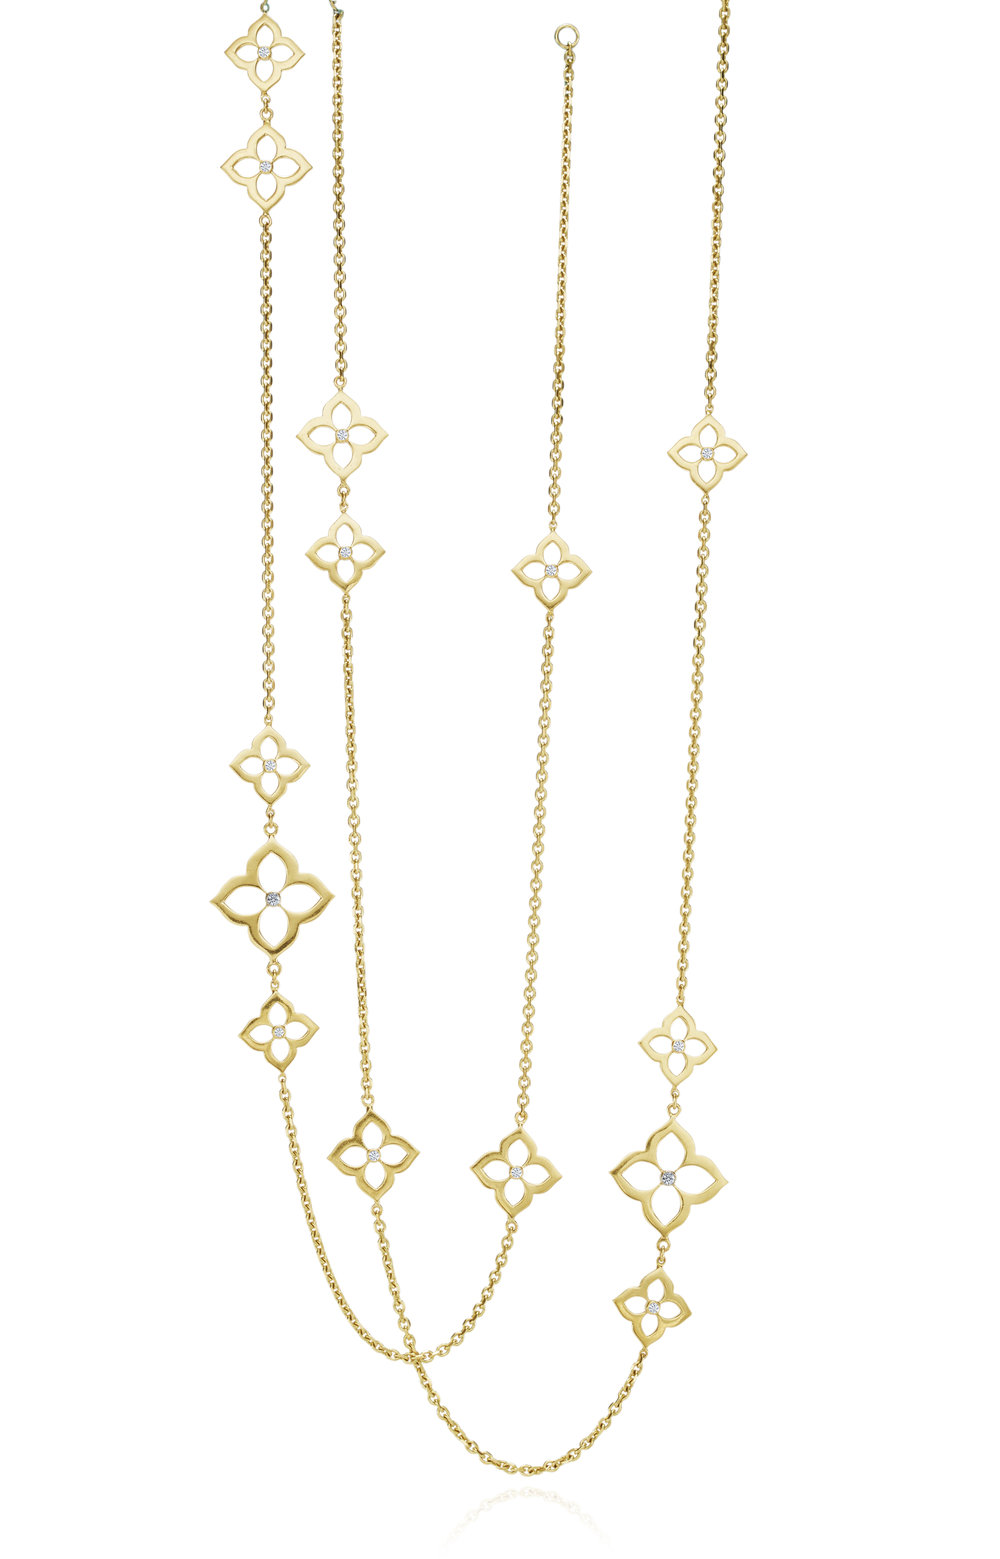 Gold & Xsmall Motif Necklace